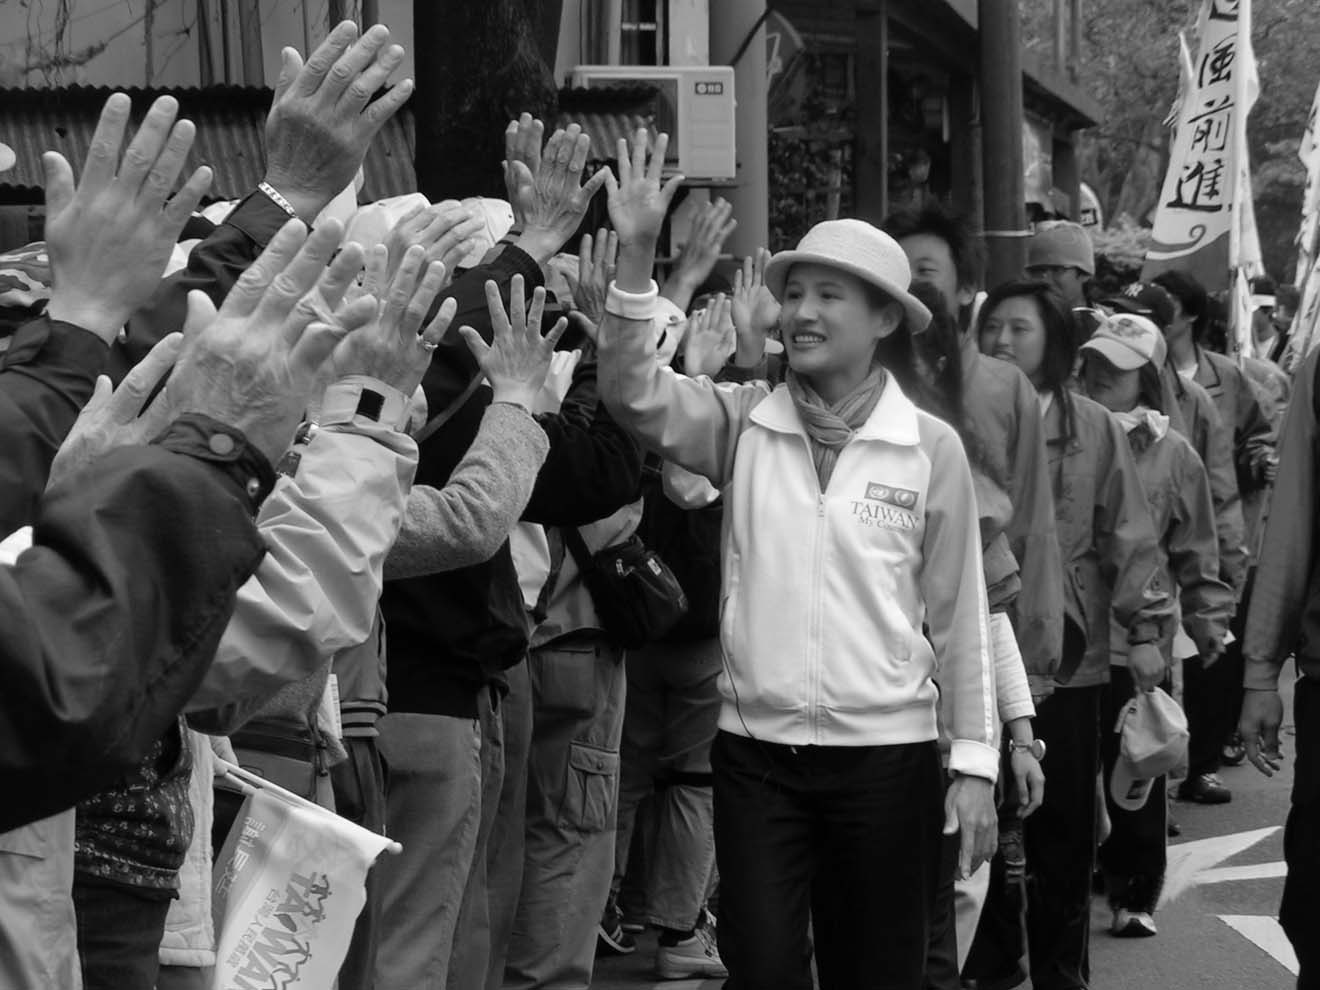 Former National Youth Commission Chairperson Cheng Li-chun led marchers and gave high-fives to supporters as participants arrived in Hsinchu.